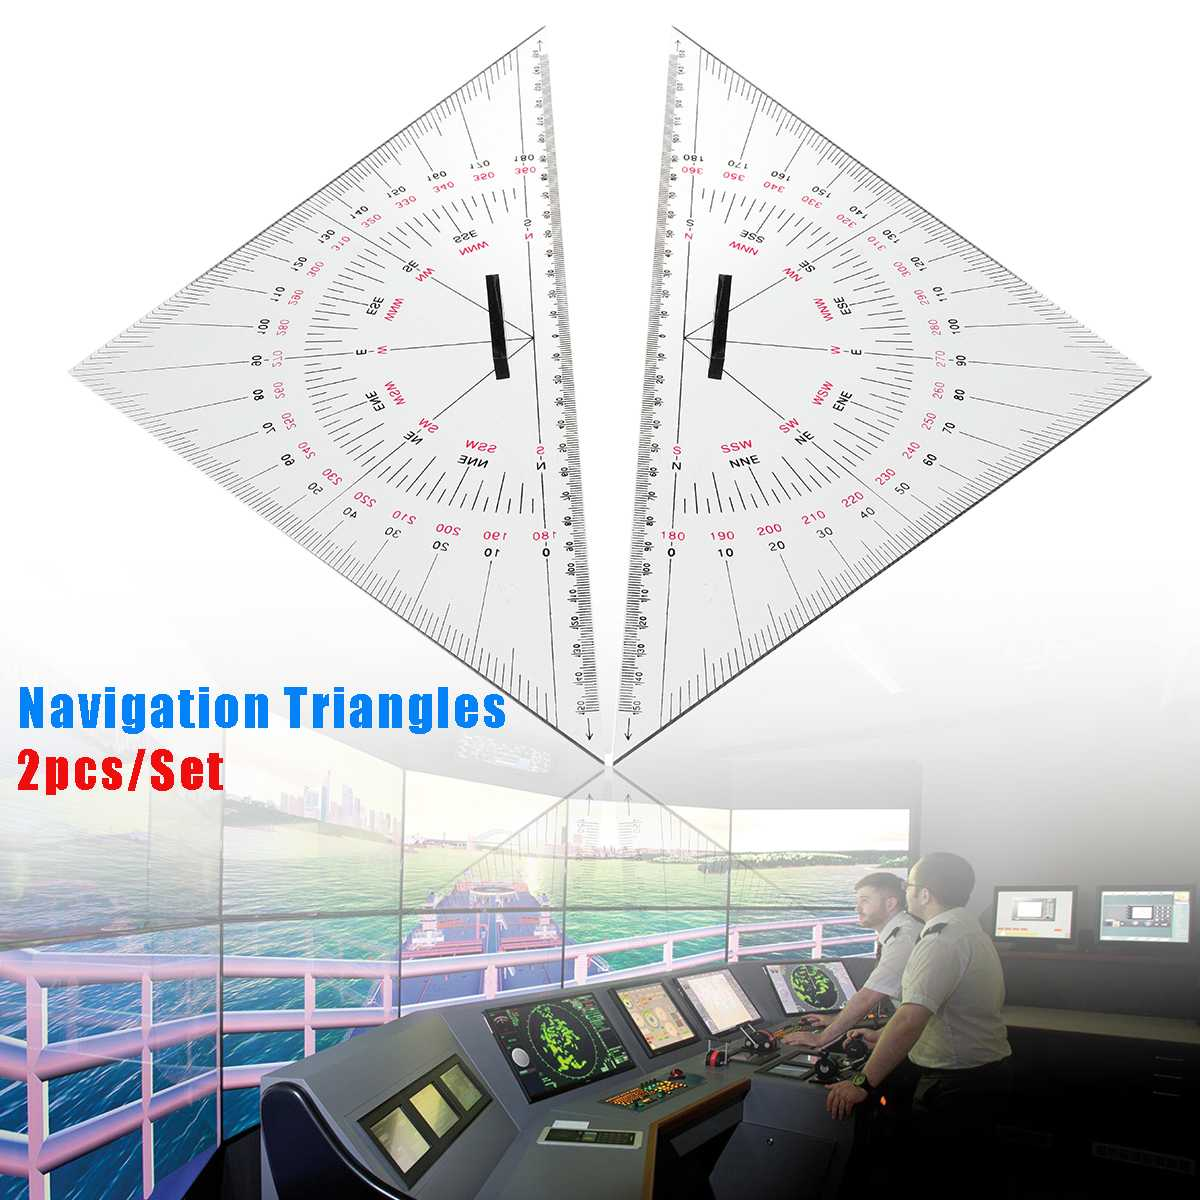 2Pcs 300mm Acrylic Navigation Triangular Protractor Hypotenuse Nautical Squares 34x24x24cm Clear Measuring & Gauging Tools